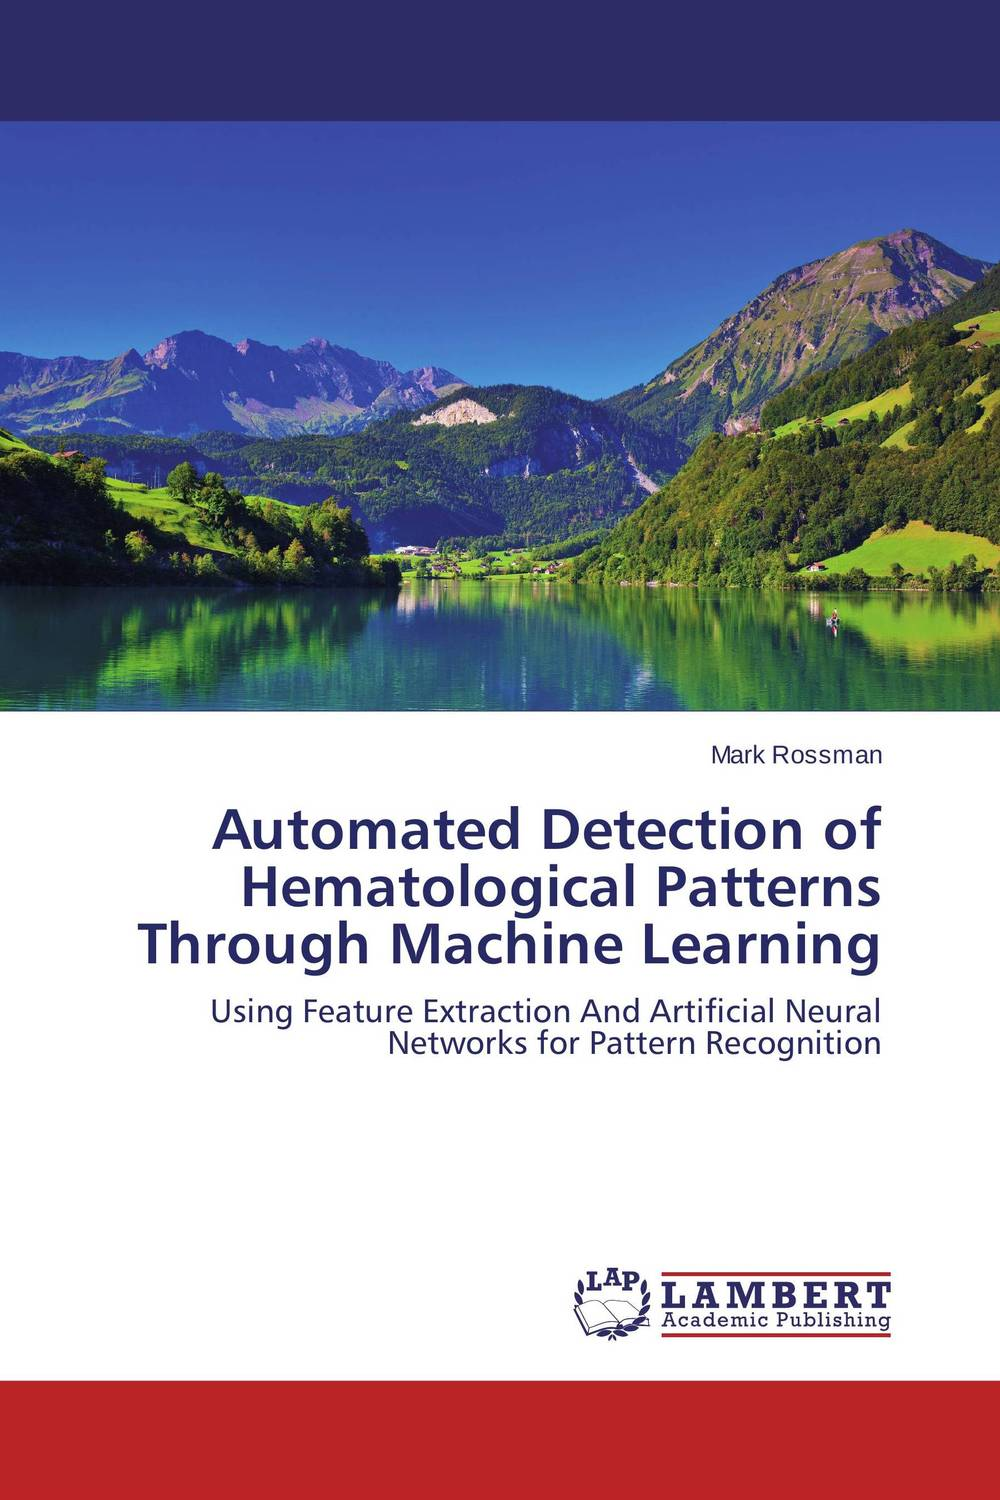 Automated Detection of Hematological Patterns Through Machine Learning